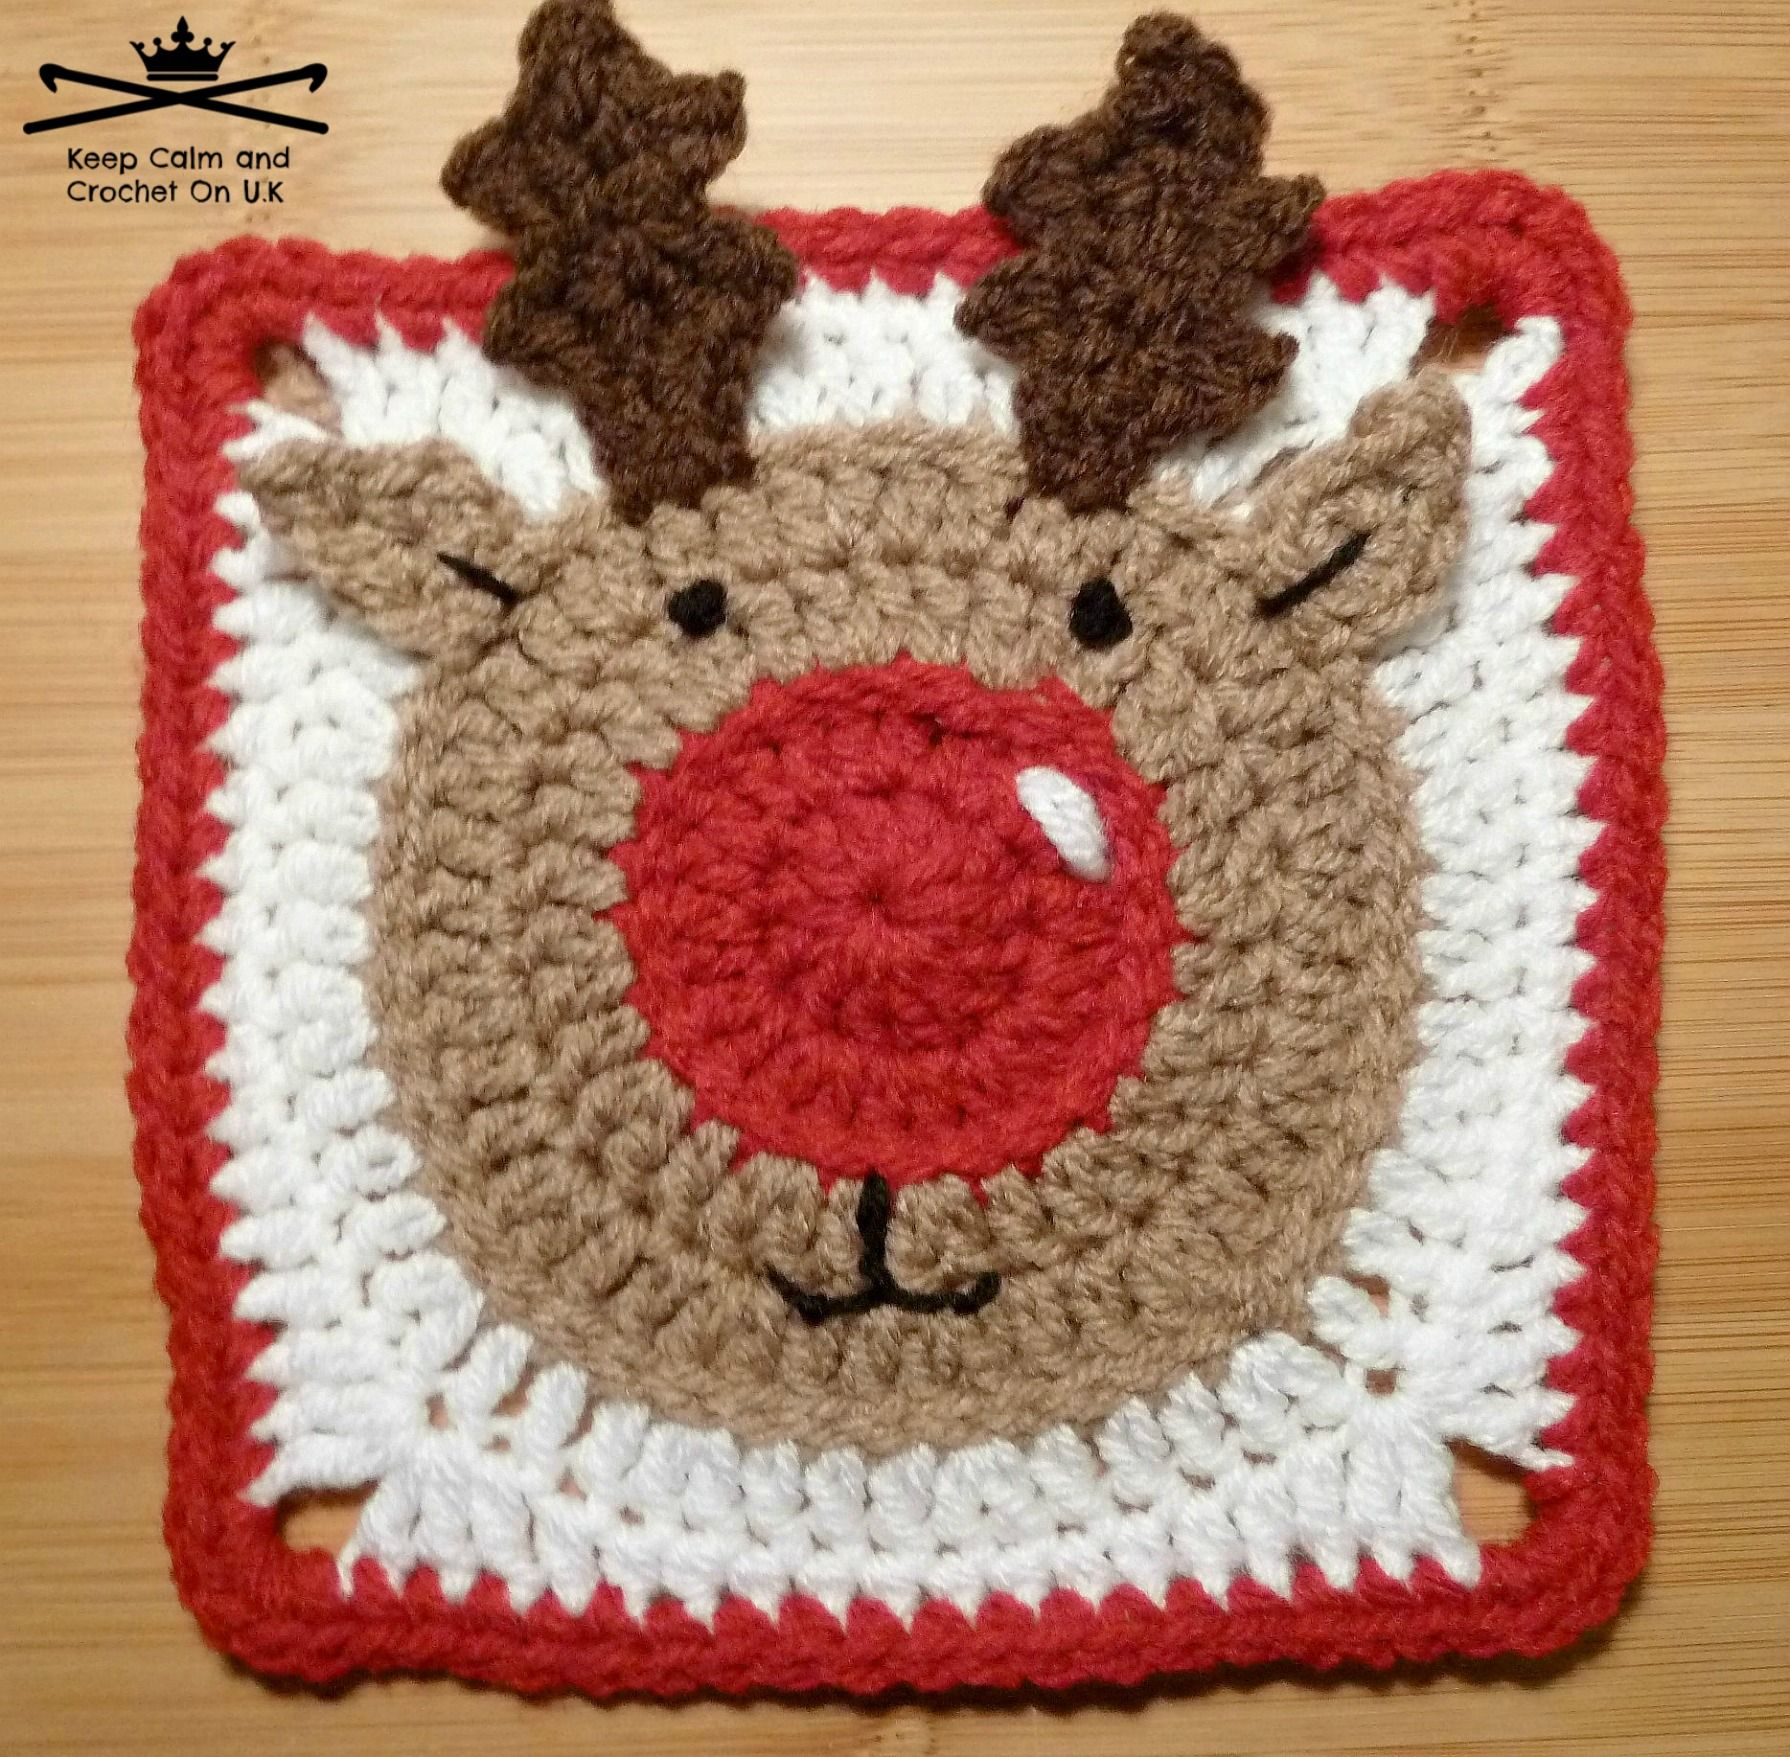 Rudolph The Reindeer Afghan Square Release Date 22nd November 13 Pattern By